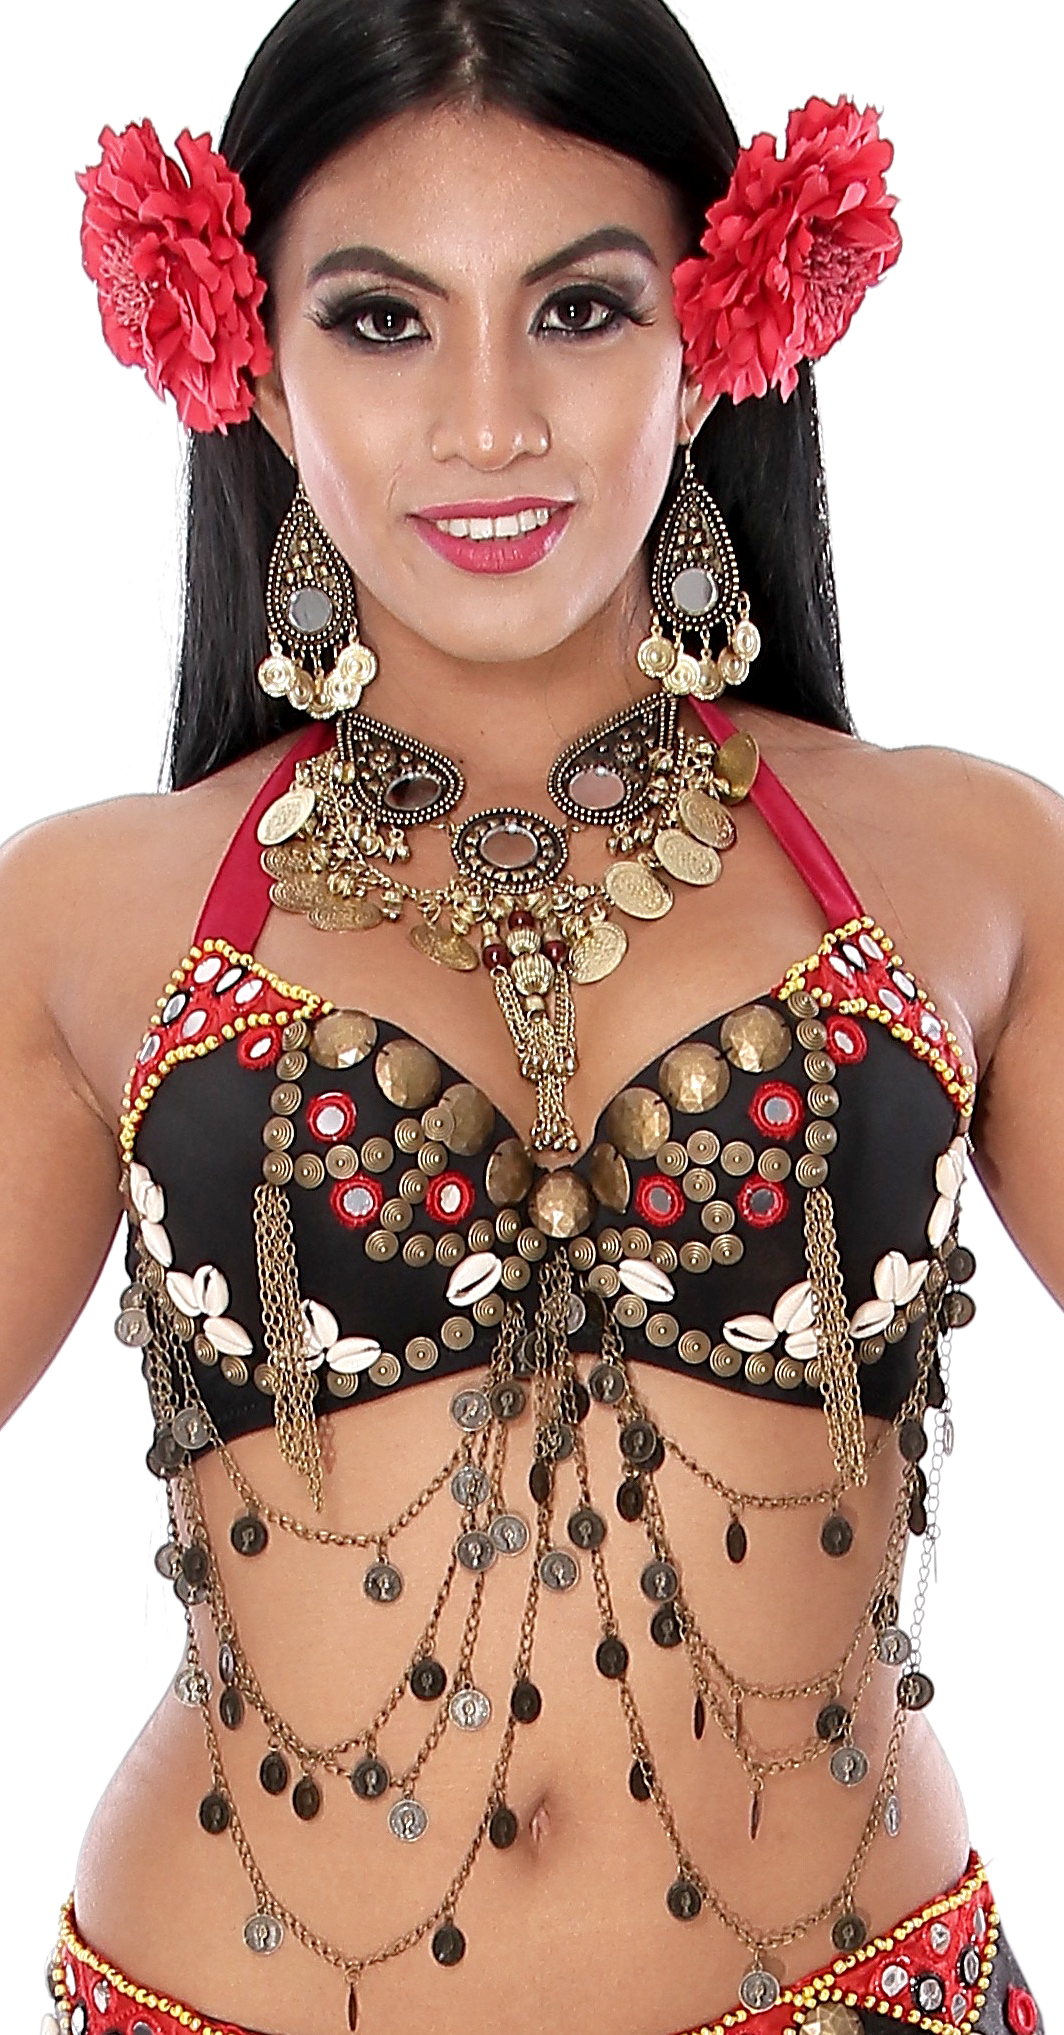 Tribal Belly Dance Bra with Shisha Mirrors, Coins, and Shells